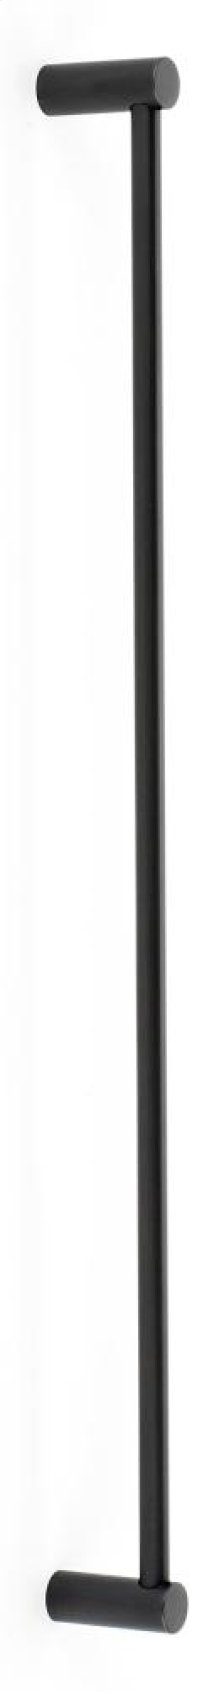 Contemporary I Appliance Pull D715-18 - Bronze